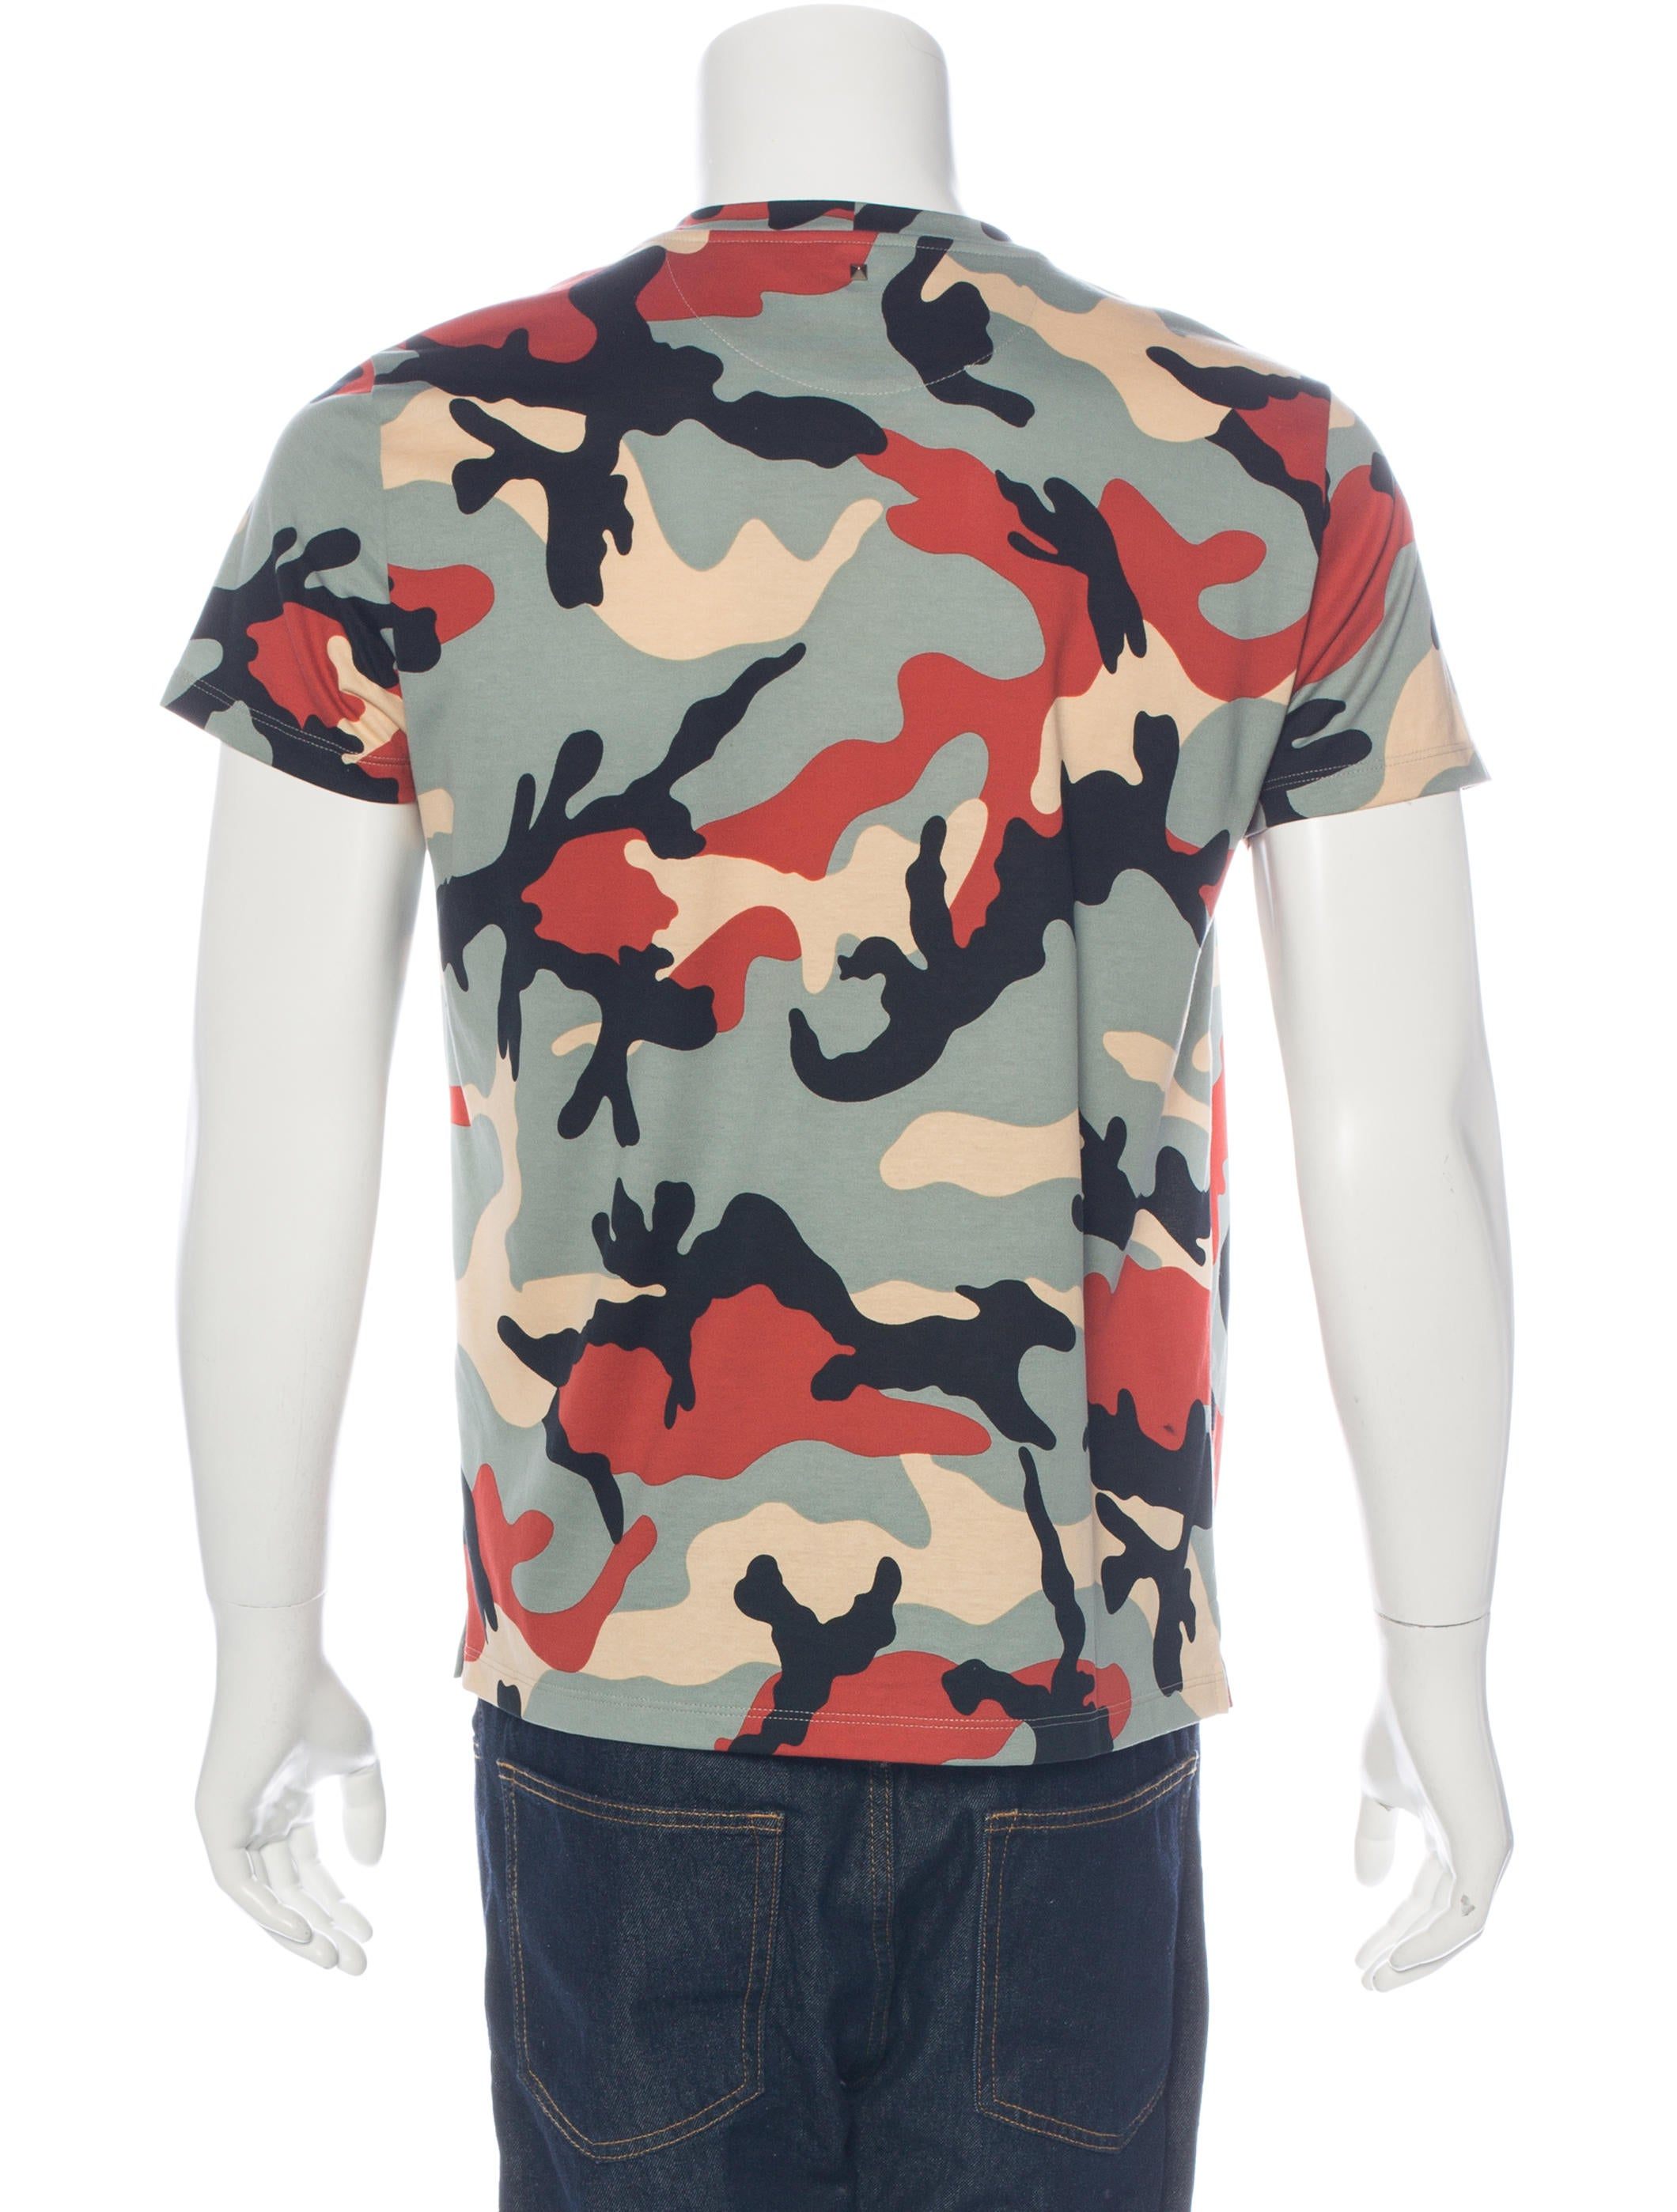 Valentino camouflage print t shirt clothing val64169 for Camouflage t shirt printing